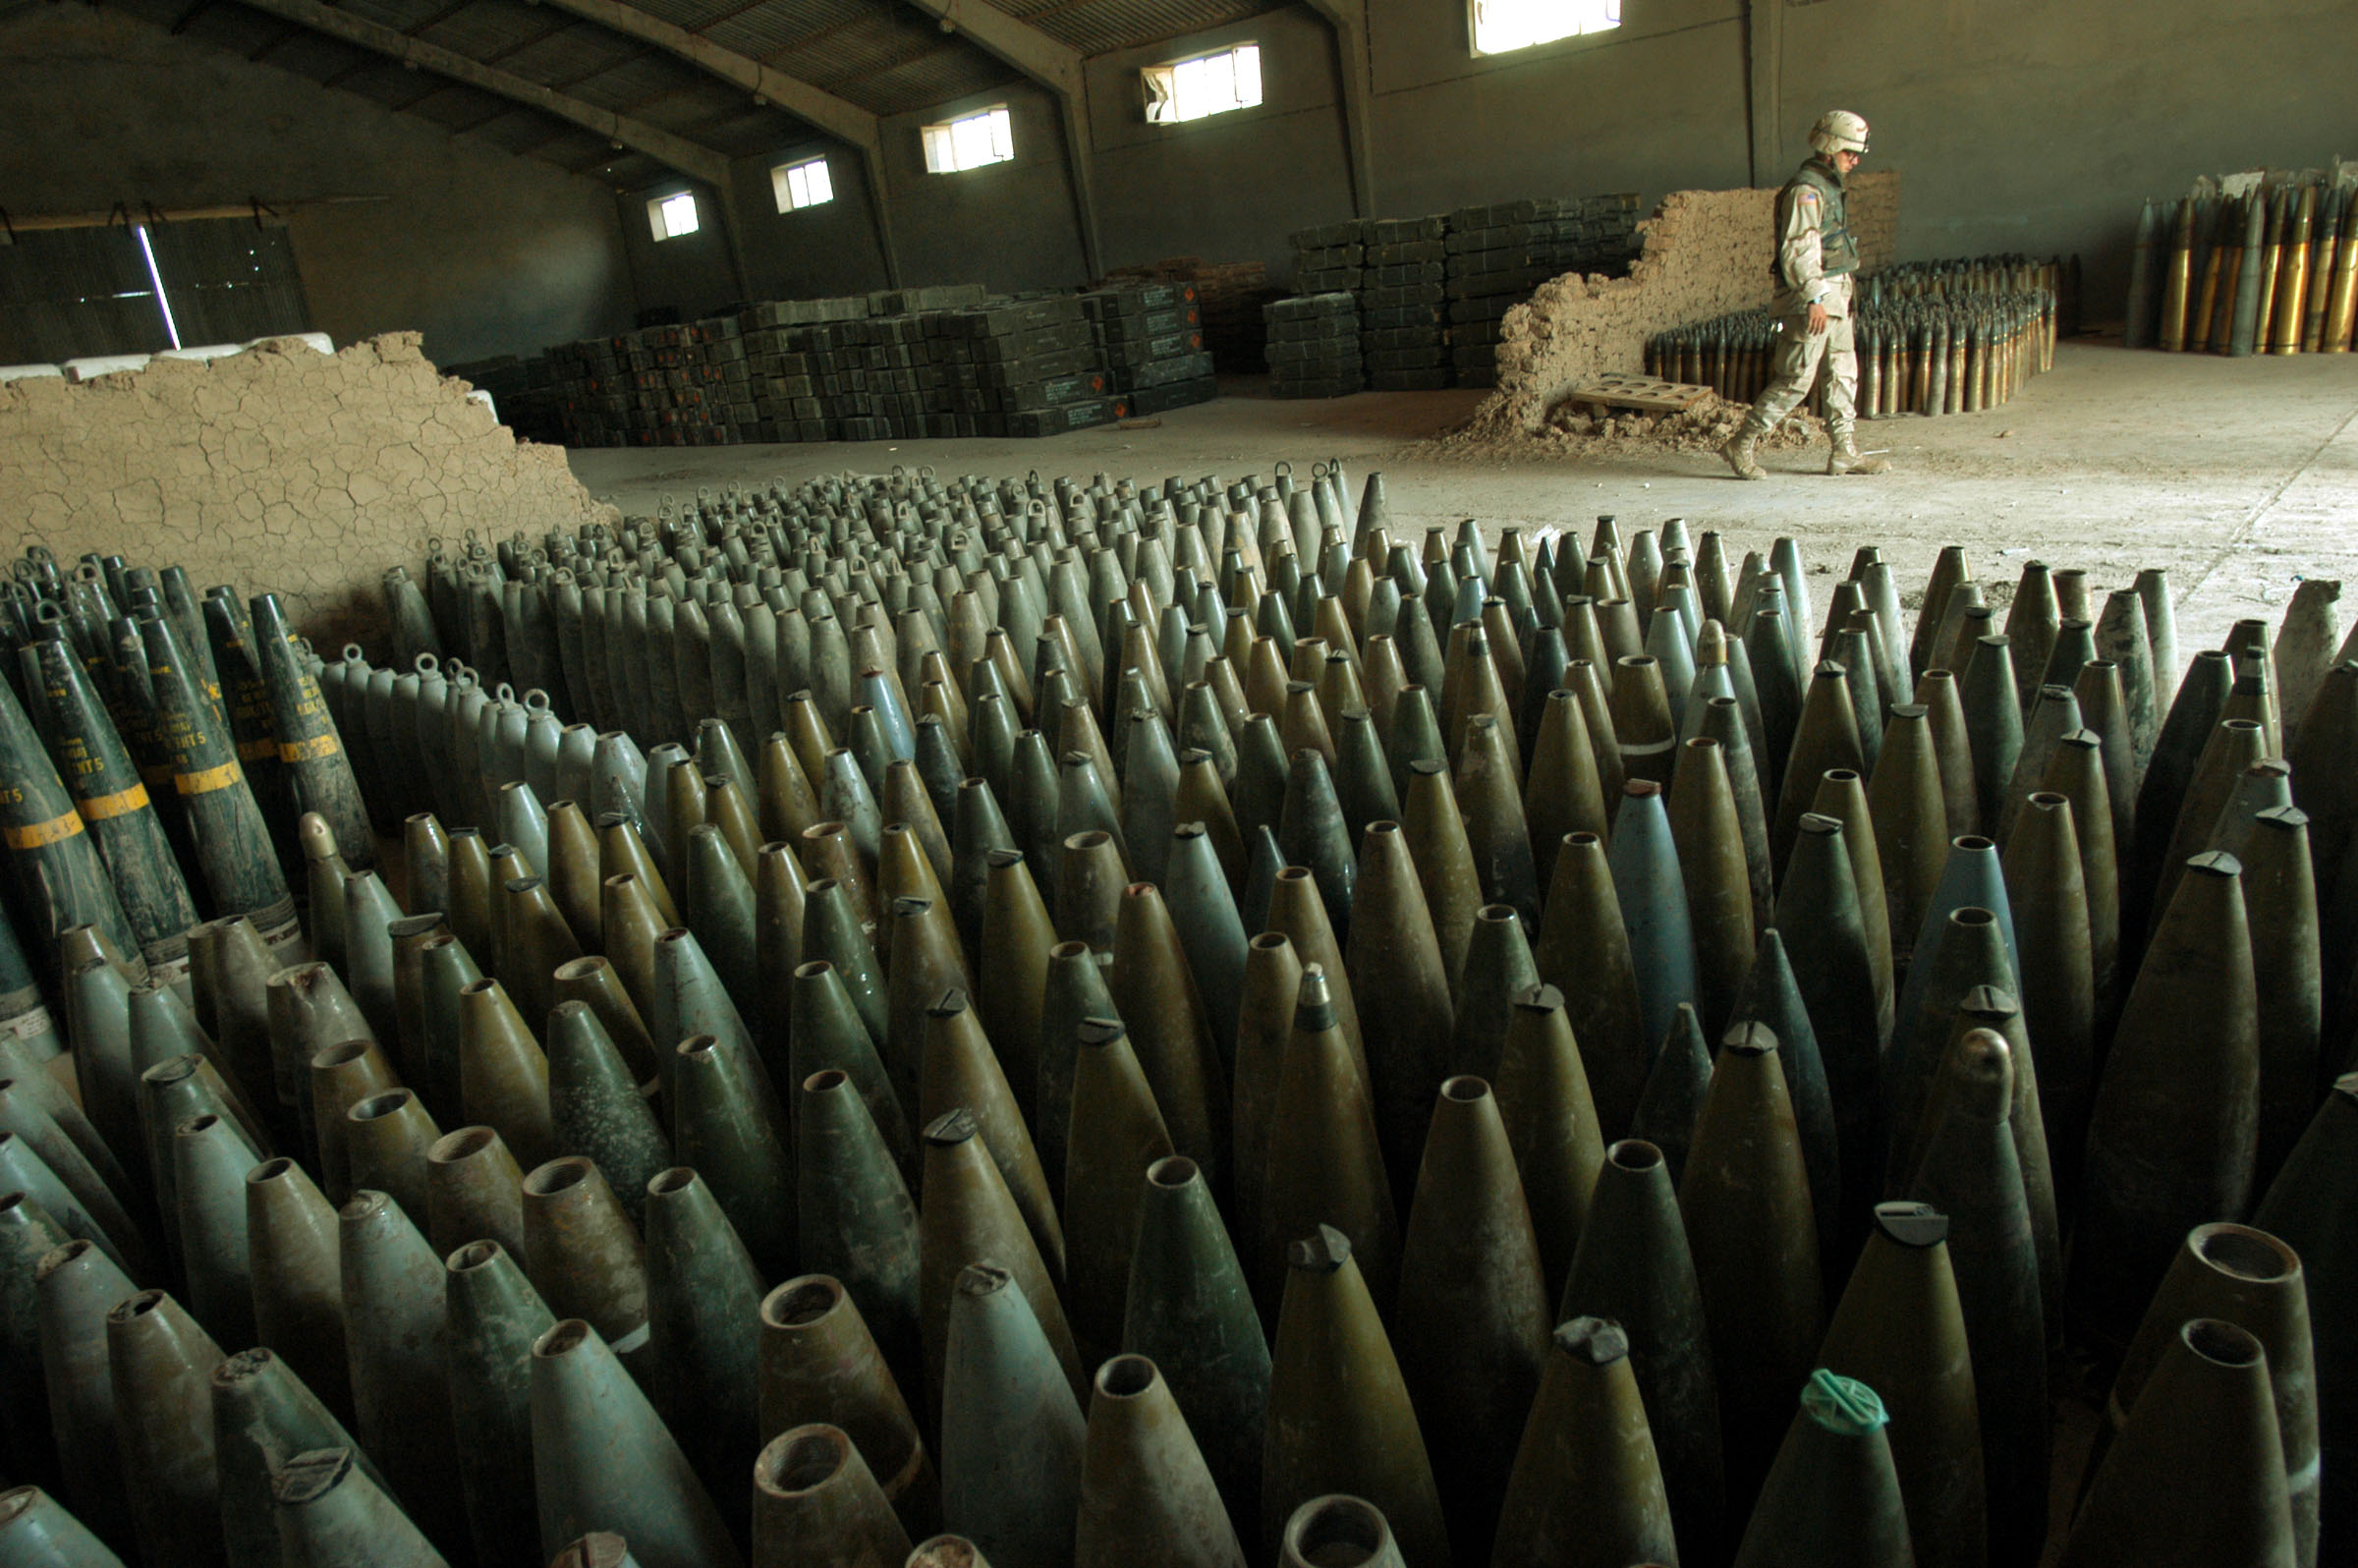 MajorTray Cate with the 101st Airbourne walks through a warehouse of ammunitions and mortar rounds in a depot of ammunitions and weapons found around the city of Mosel on a former Iraqi MIlitary site that the US troops has designated for recovered ammunitions and weapons, in Mosel, Northern Iraq, April 30, 2003. Since the fall of Saddam Hussain's regime in Iraq, hundreds of homes and makeshift depots like these, and with cahches of arms and ammunitions, have been found throughout the country.